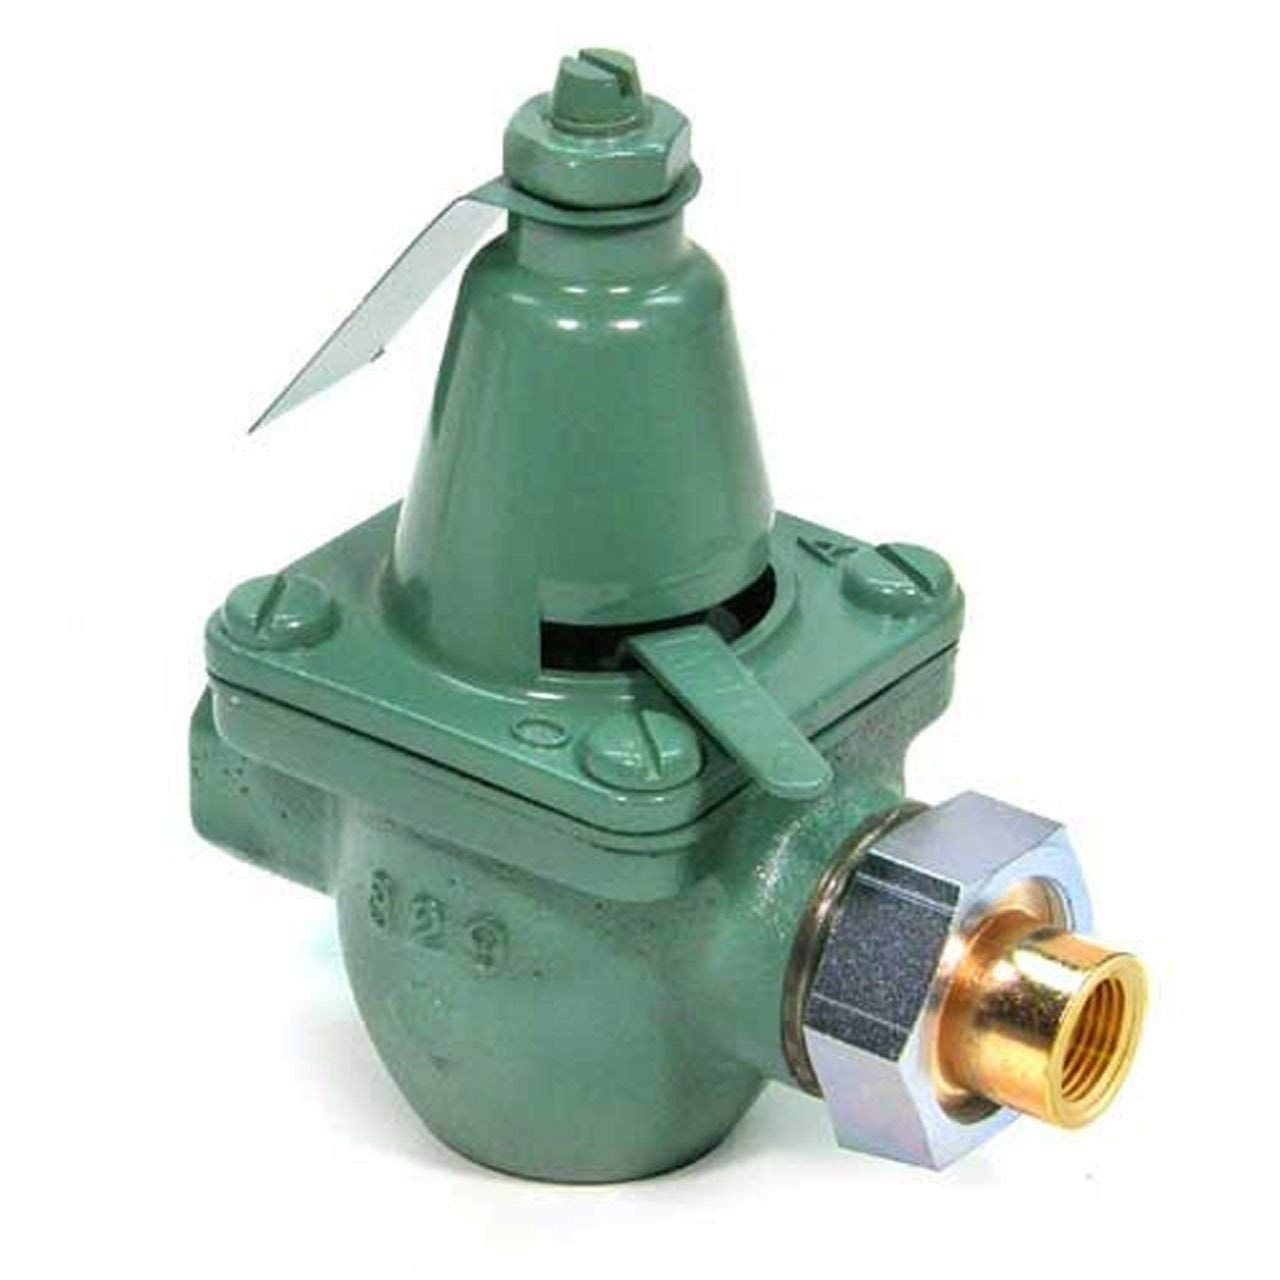 Taco 329 T3 Cast Iron 1 2 Inch Fpt X 1 2 Inch Fpt Pressure Reducing Valve Be Sure To Check Out This Awesome Product This Is An Af It Cast Valve Cast Iron